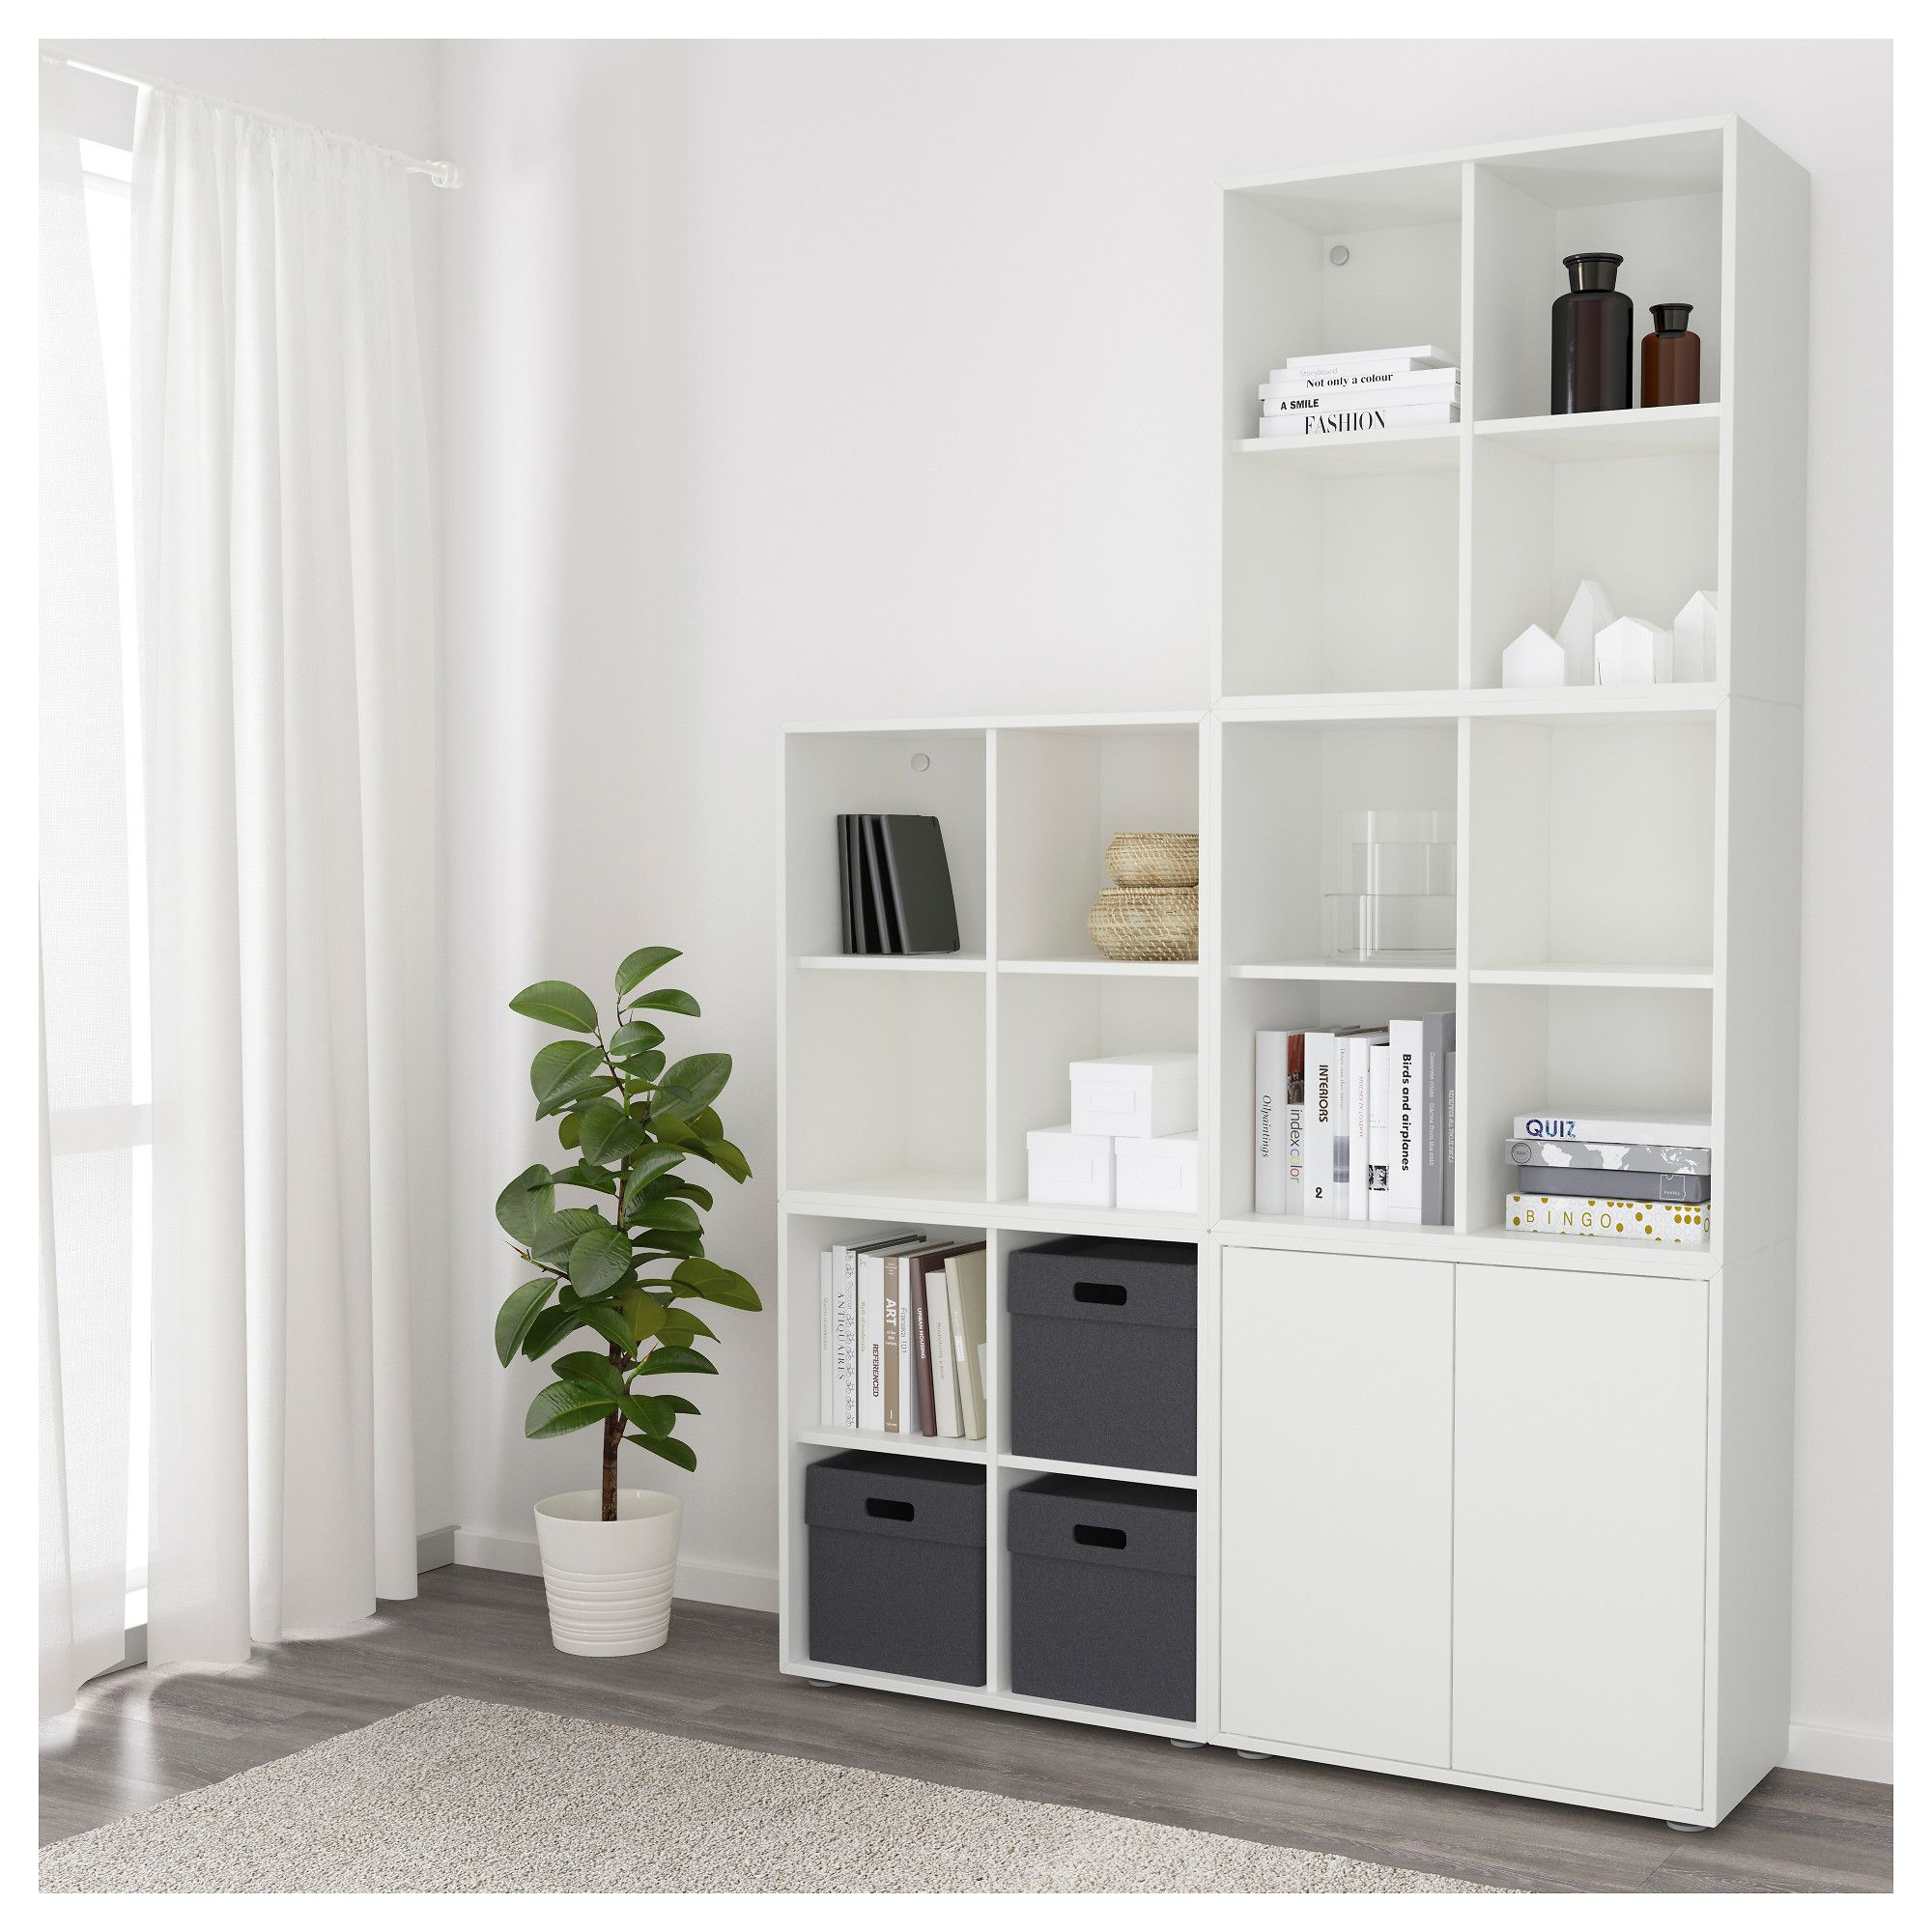 Eket Schrankkombination Fusse Weiss Products In 2019 Ikea Ikea